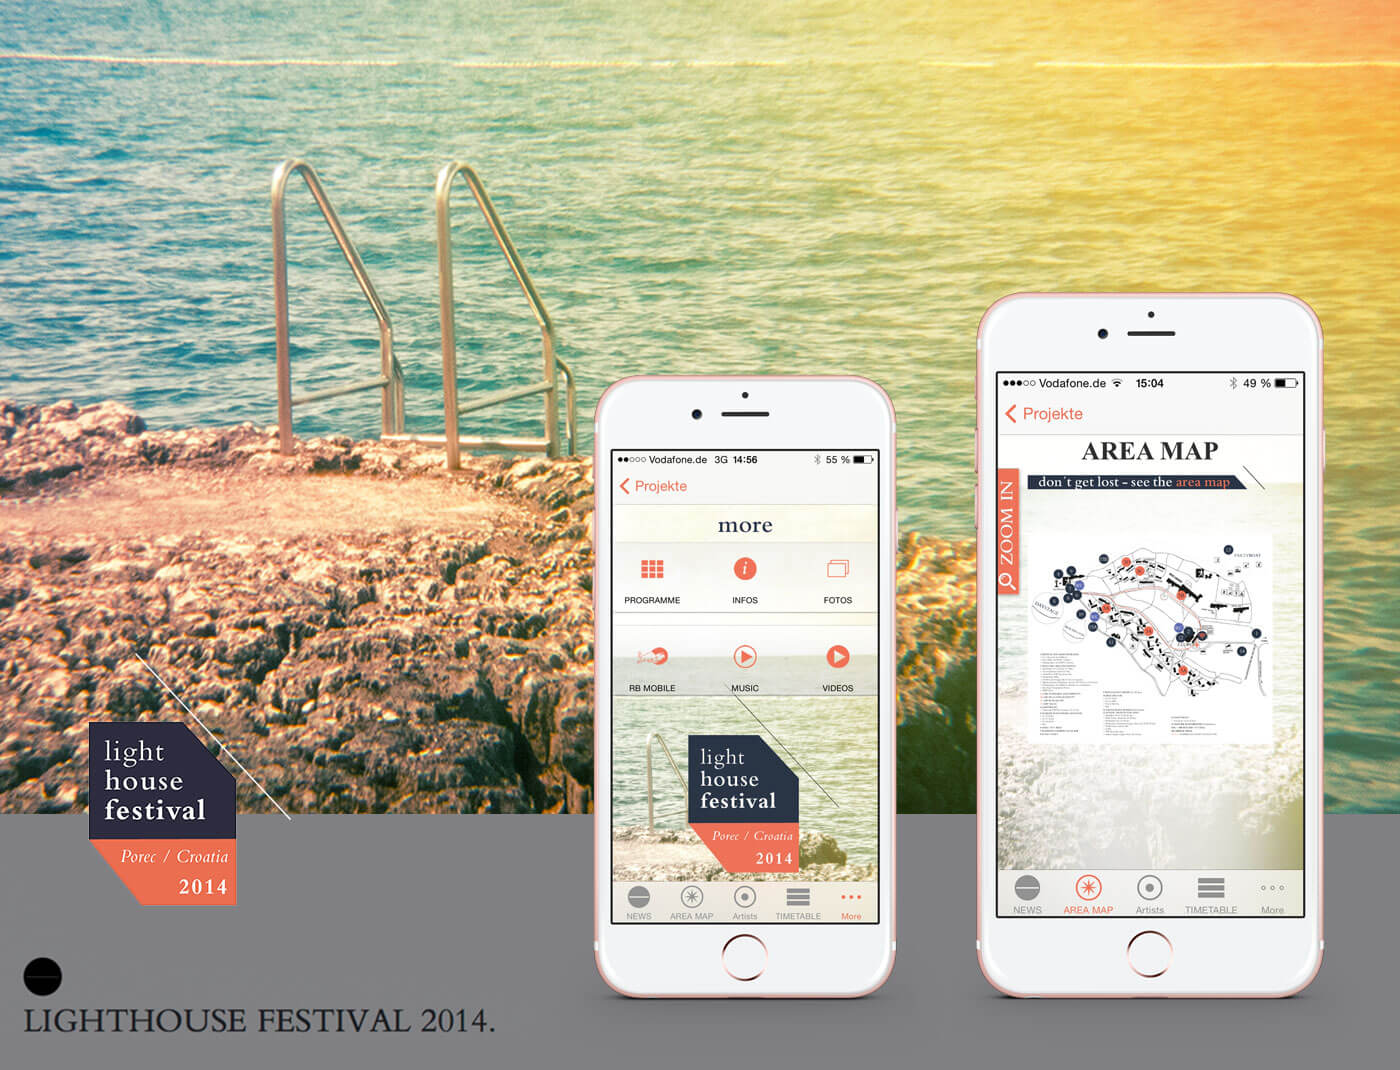 Lighthouse Festival 2014, Croatia/Poreč APP